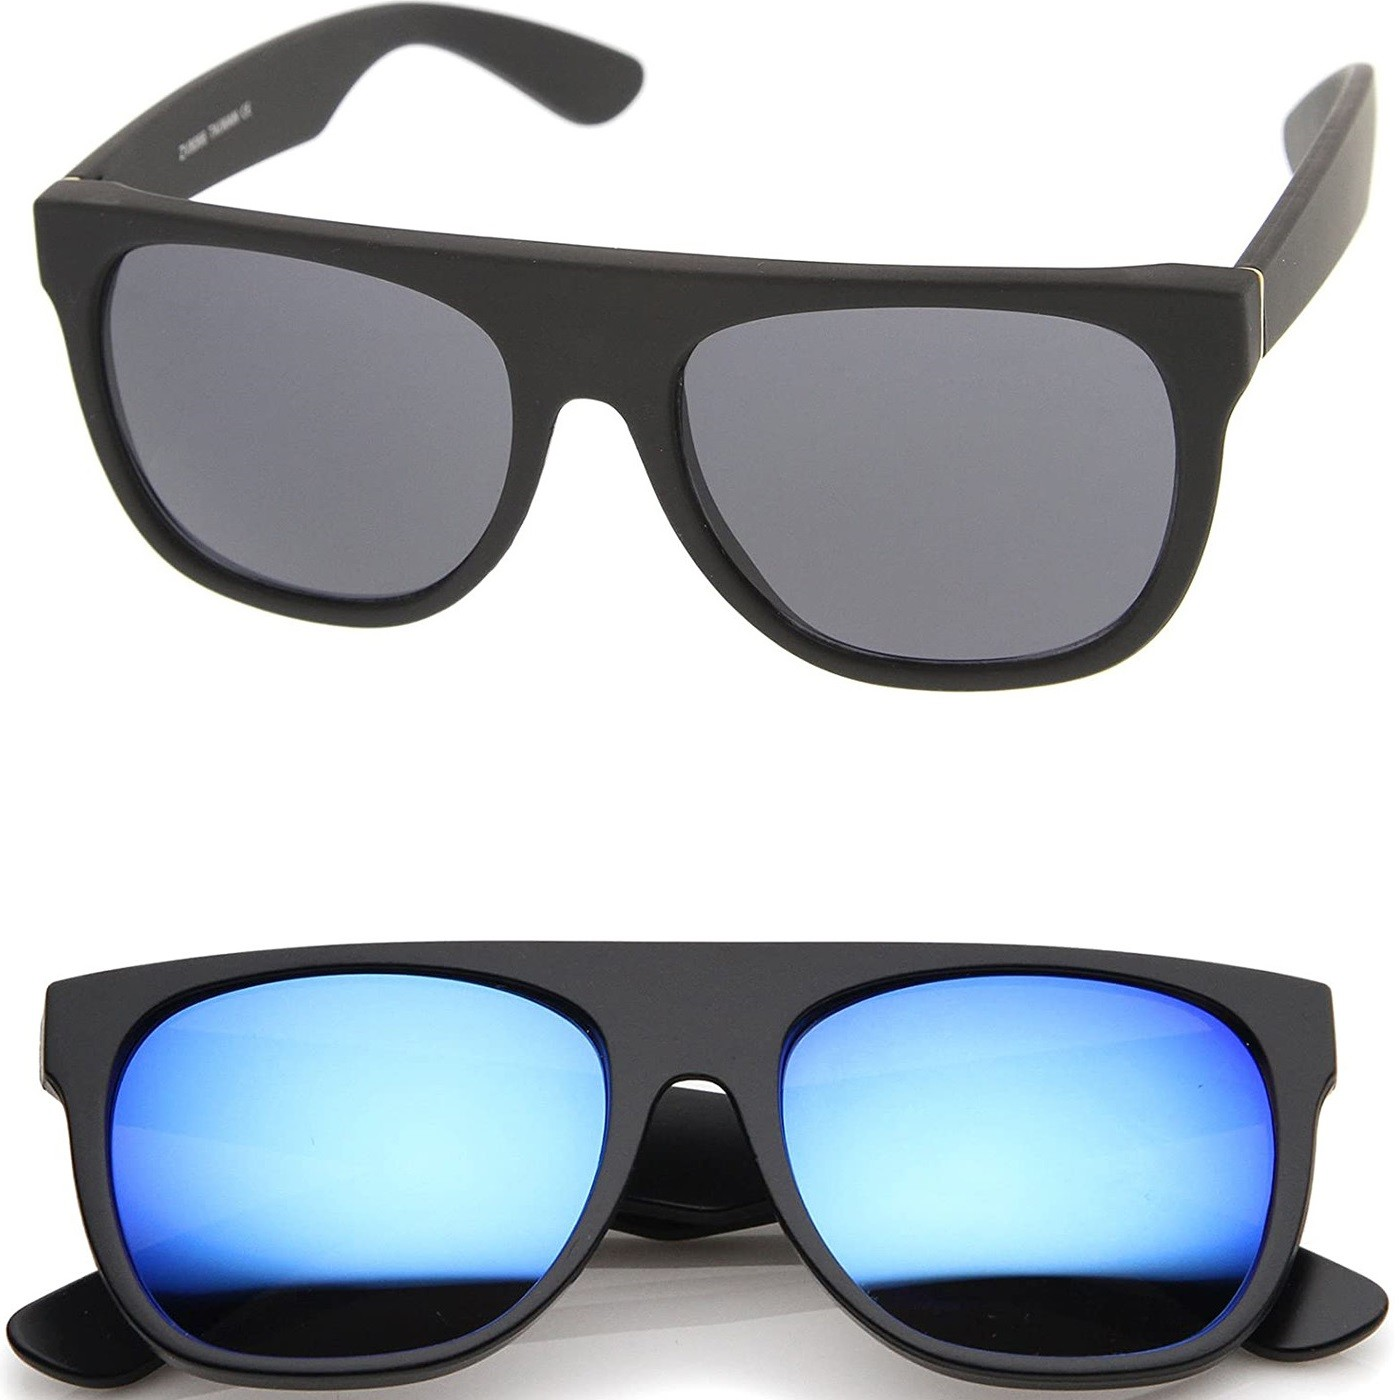 Sunglasses KISS® - mod. LOUNGE SUPER - man woman HIP-HOP rapper vintage FLAT TOP